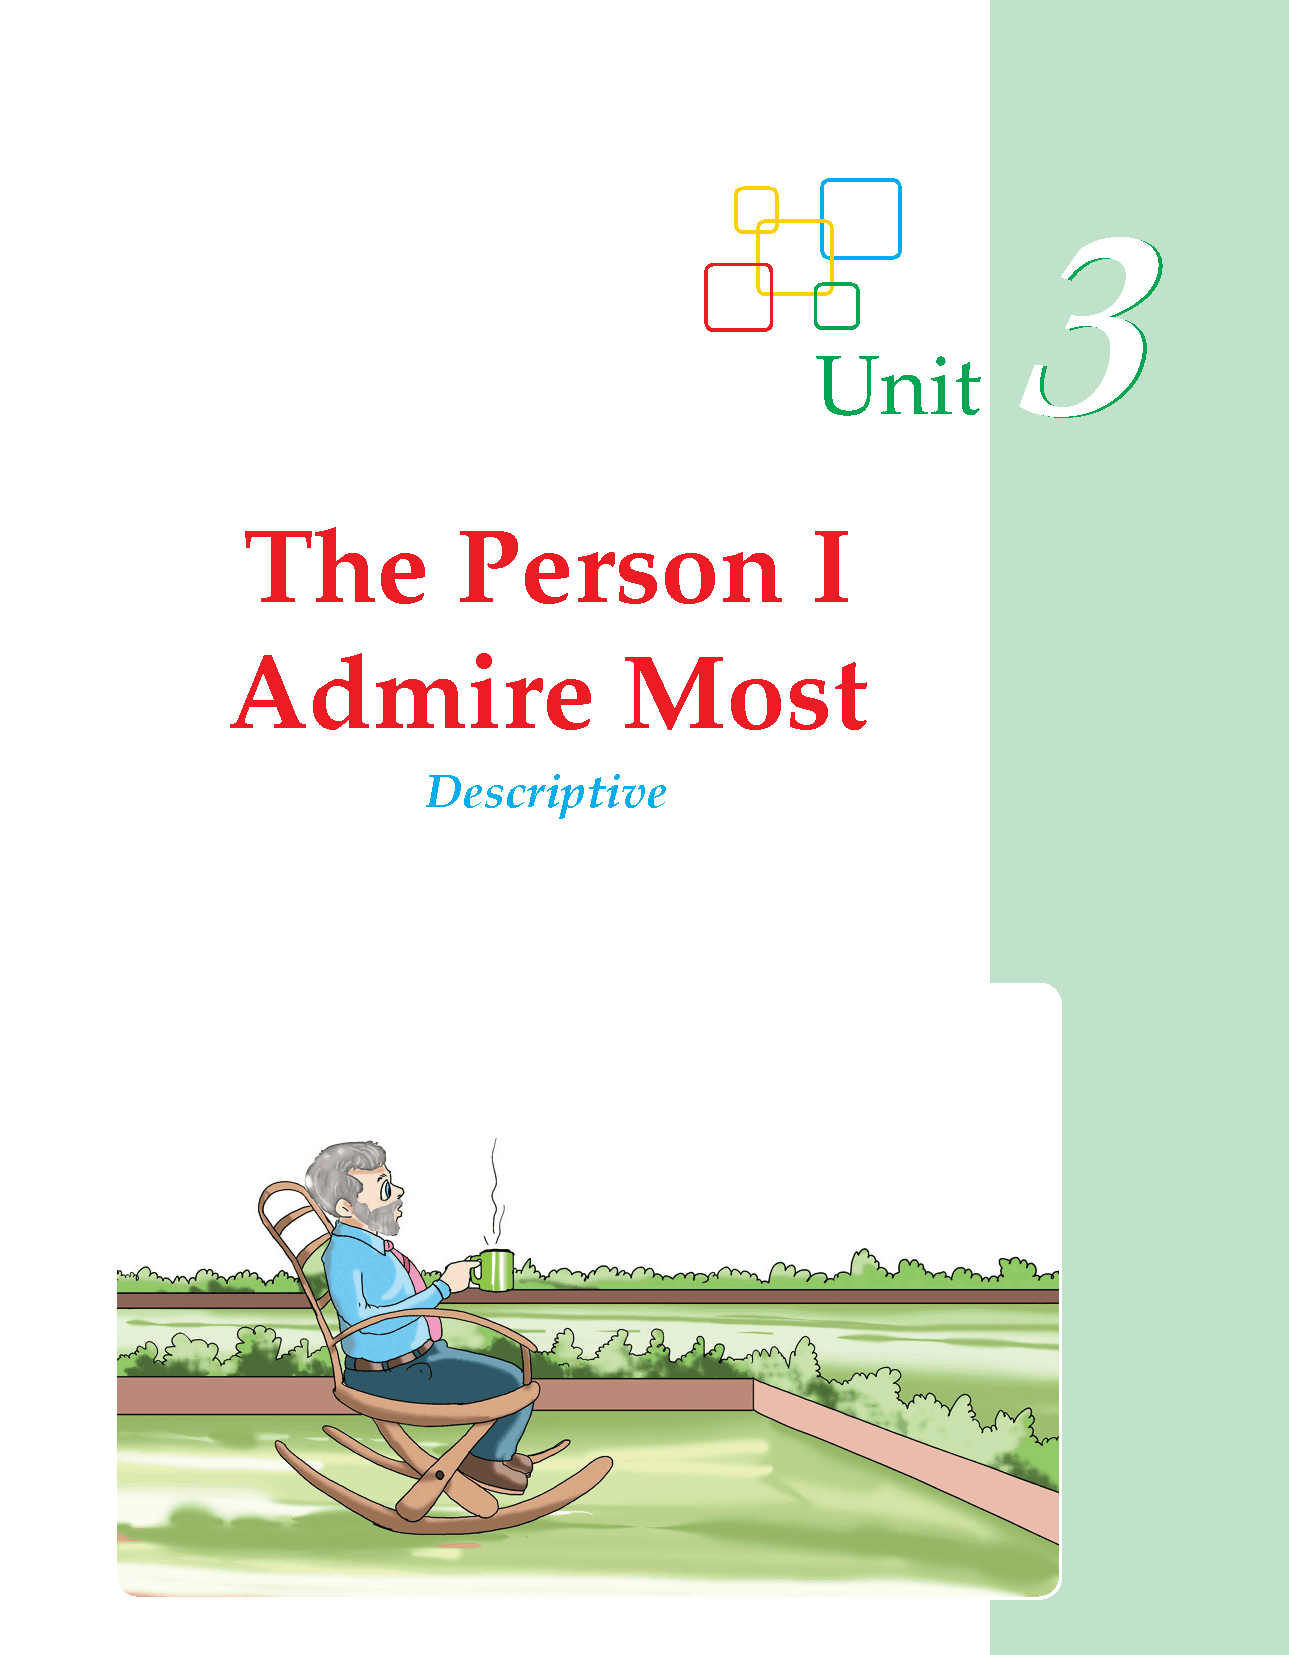 descriptive essay about someone you admire I admire her the most as she possesses most of the qualities that we should have  in  let us write you a custom essay sample on the person i admire the most.